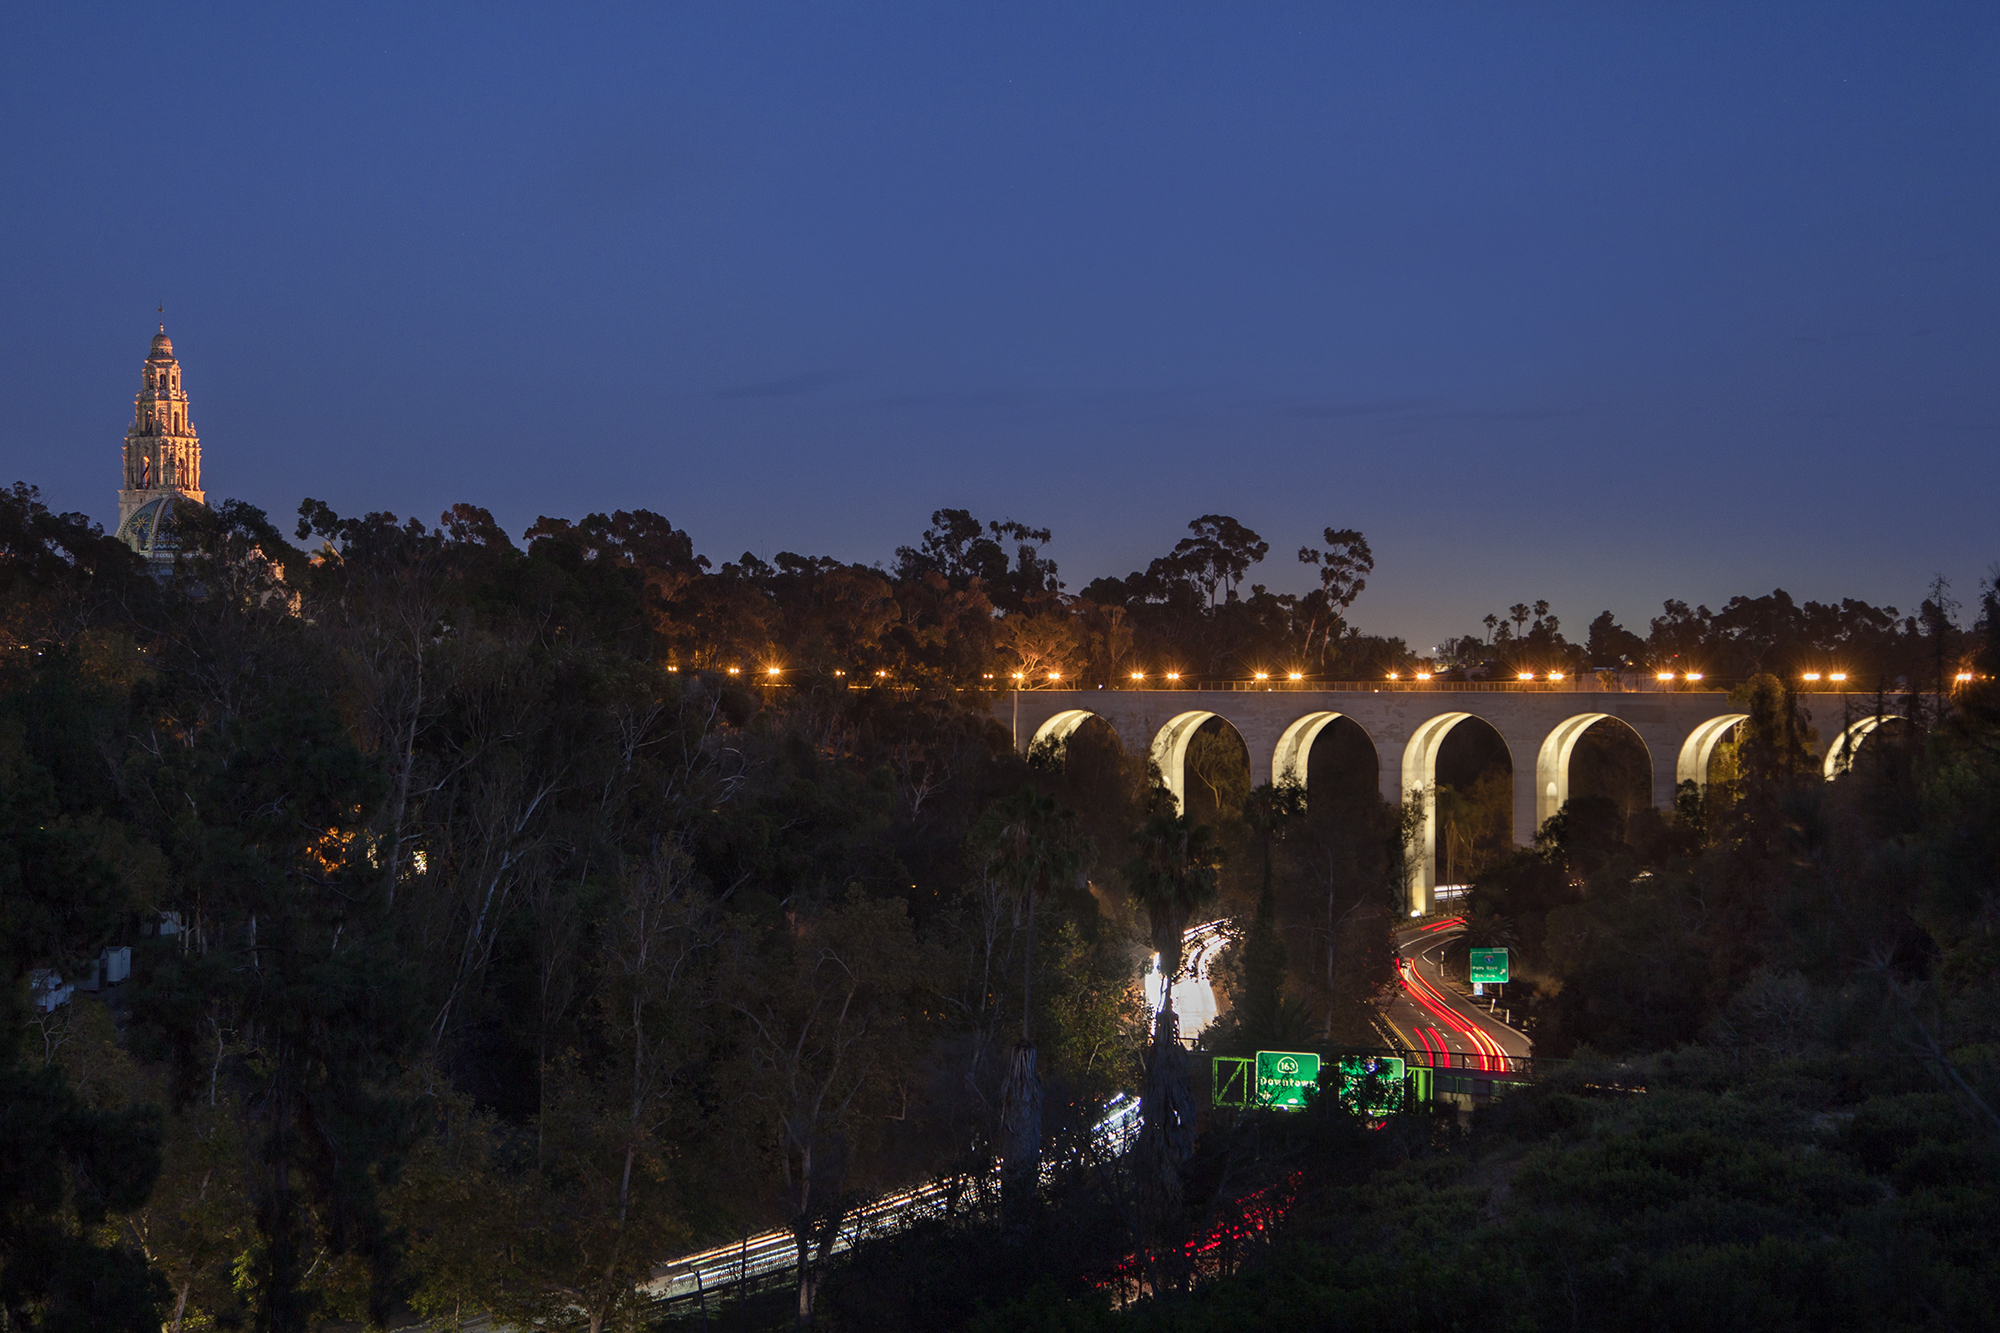 Cabrillo bridge architectural lighting magazine transportation projects infrastructure projects exteriors lighting design bridges illumination arts